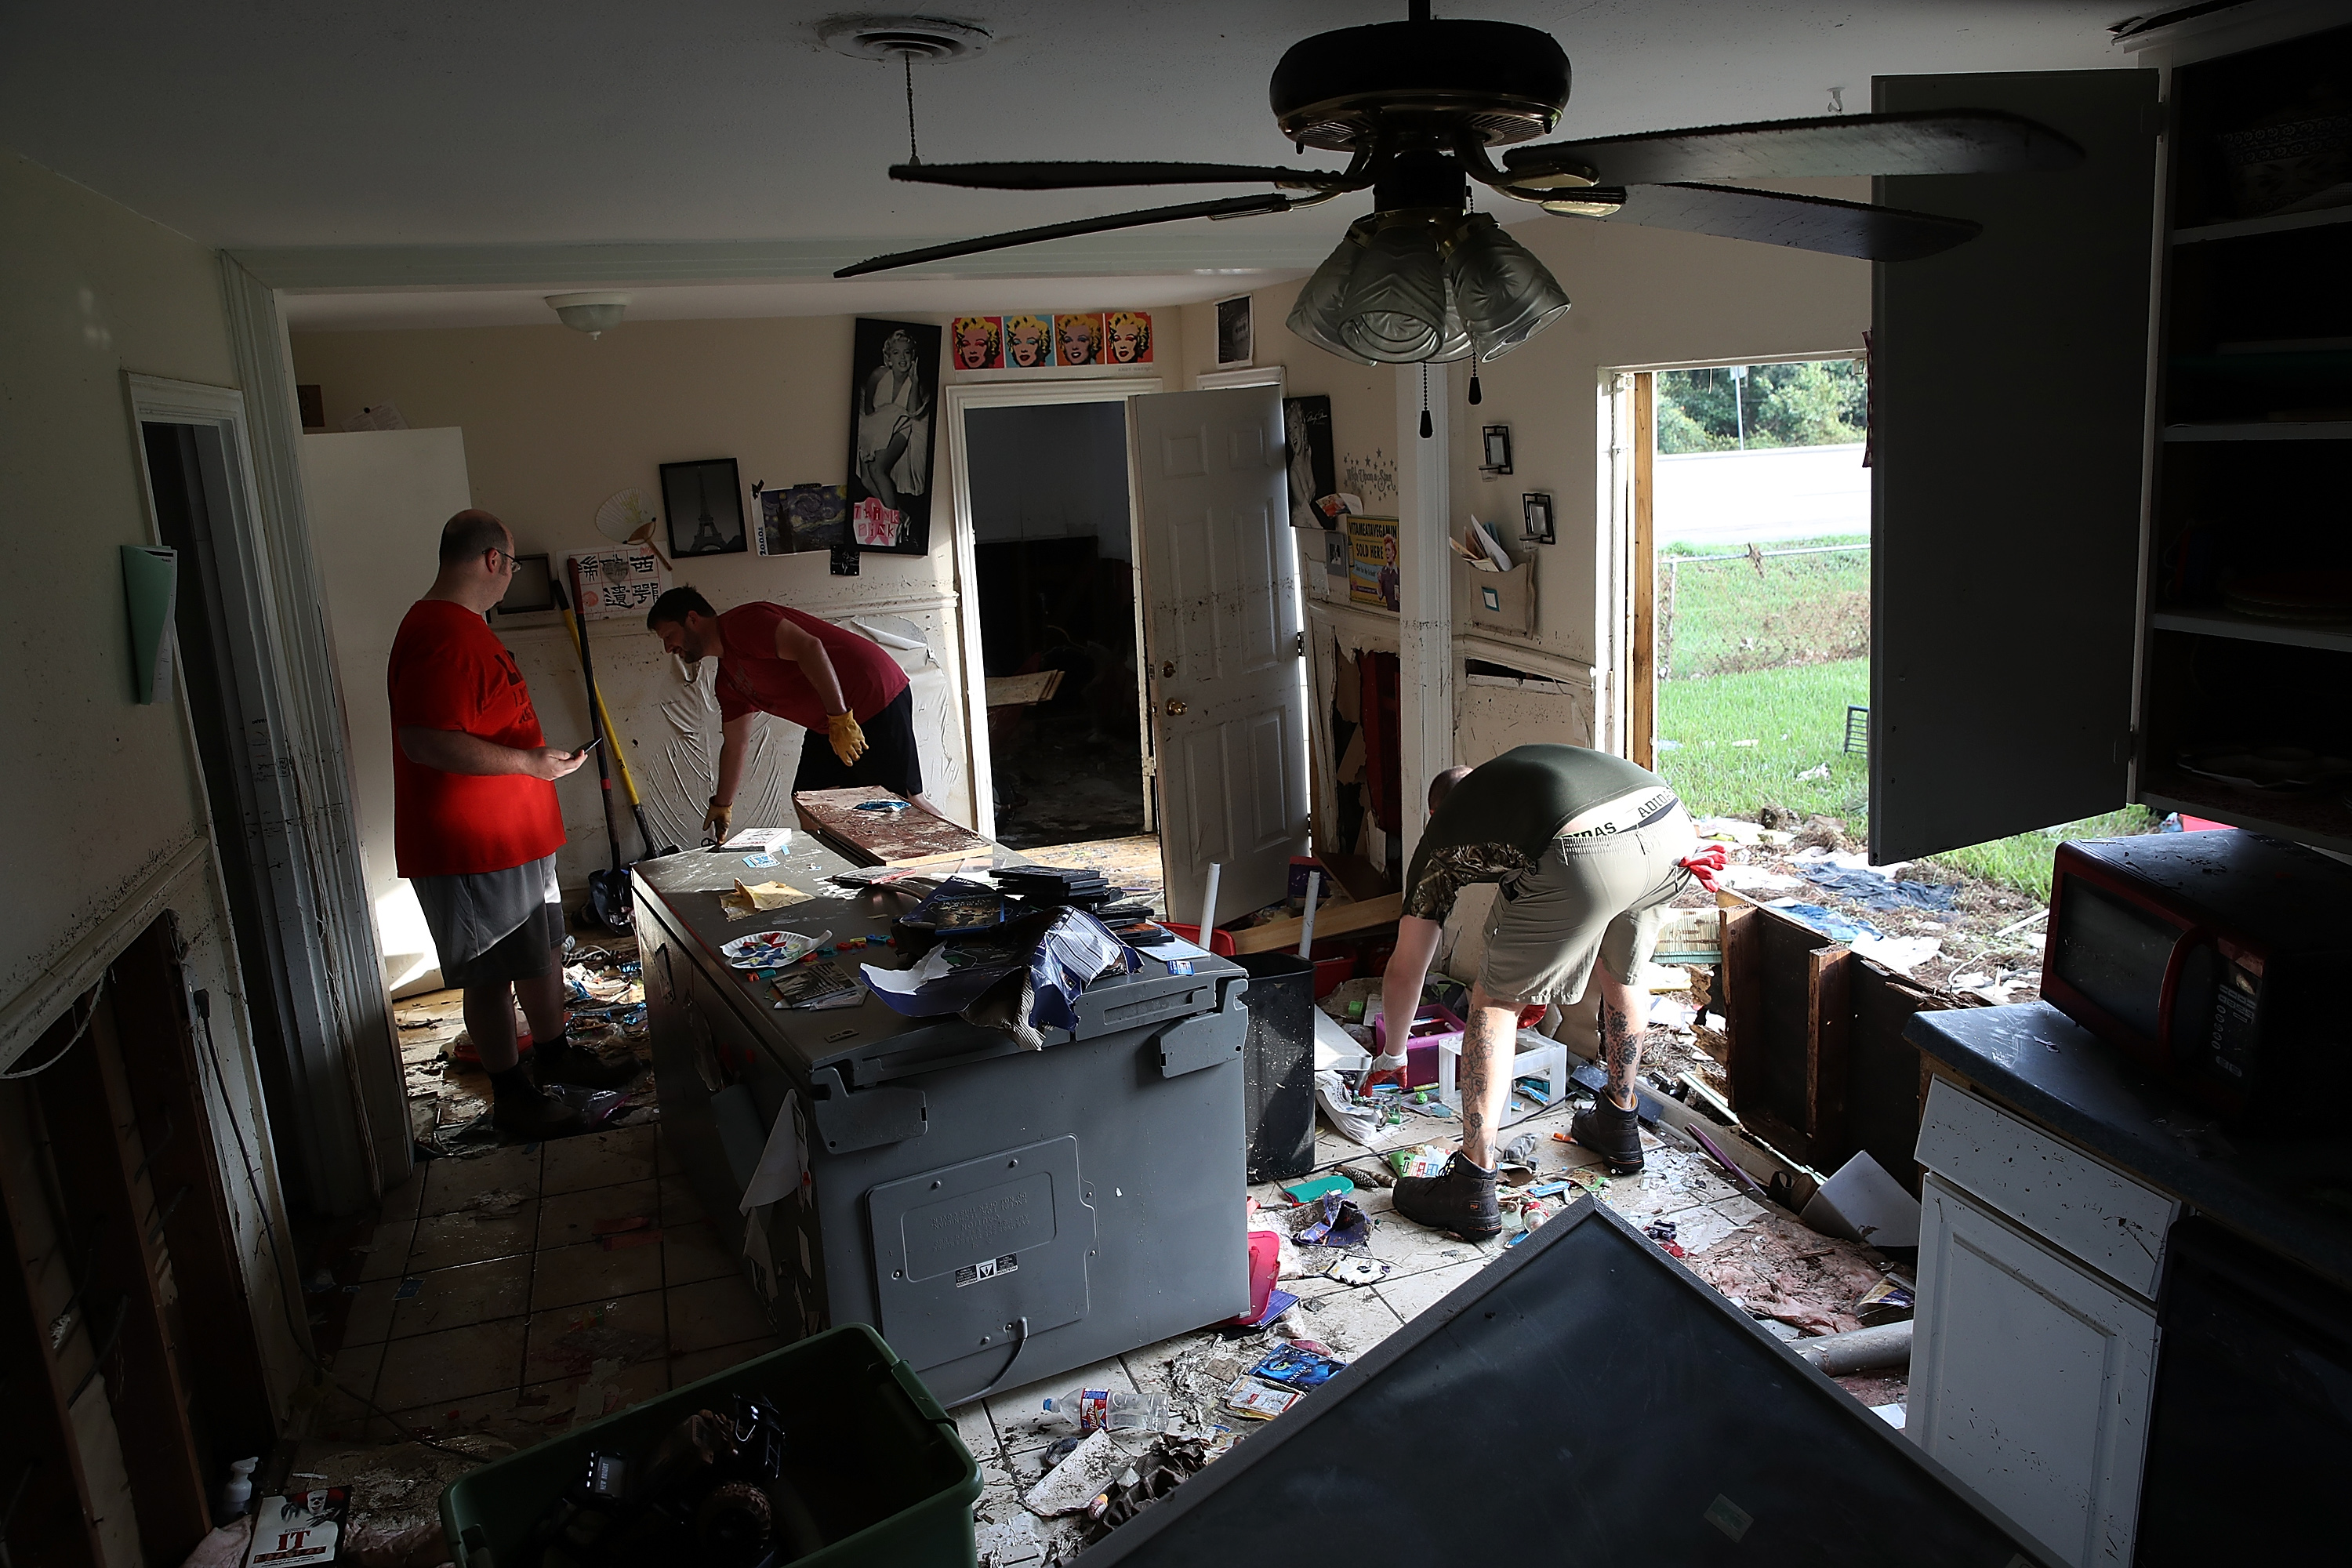 Houston Area Begins Slow Recovery From Catastrophic Harvey Storm Damage